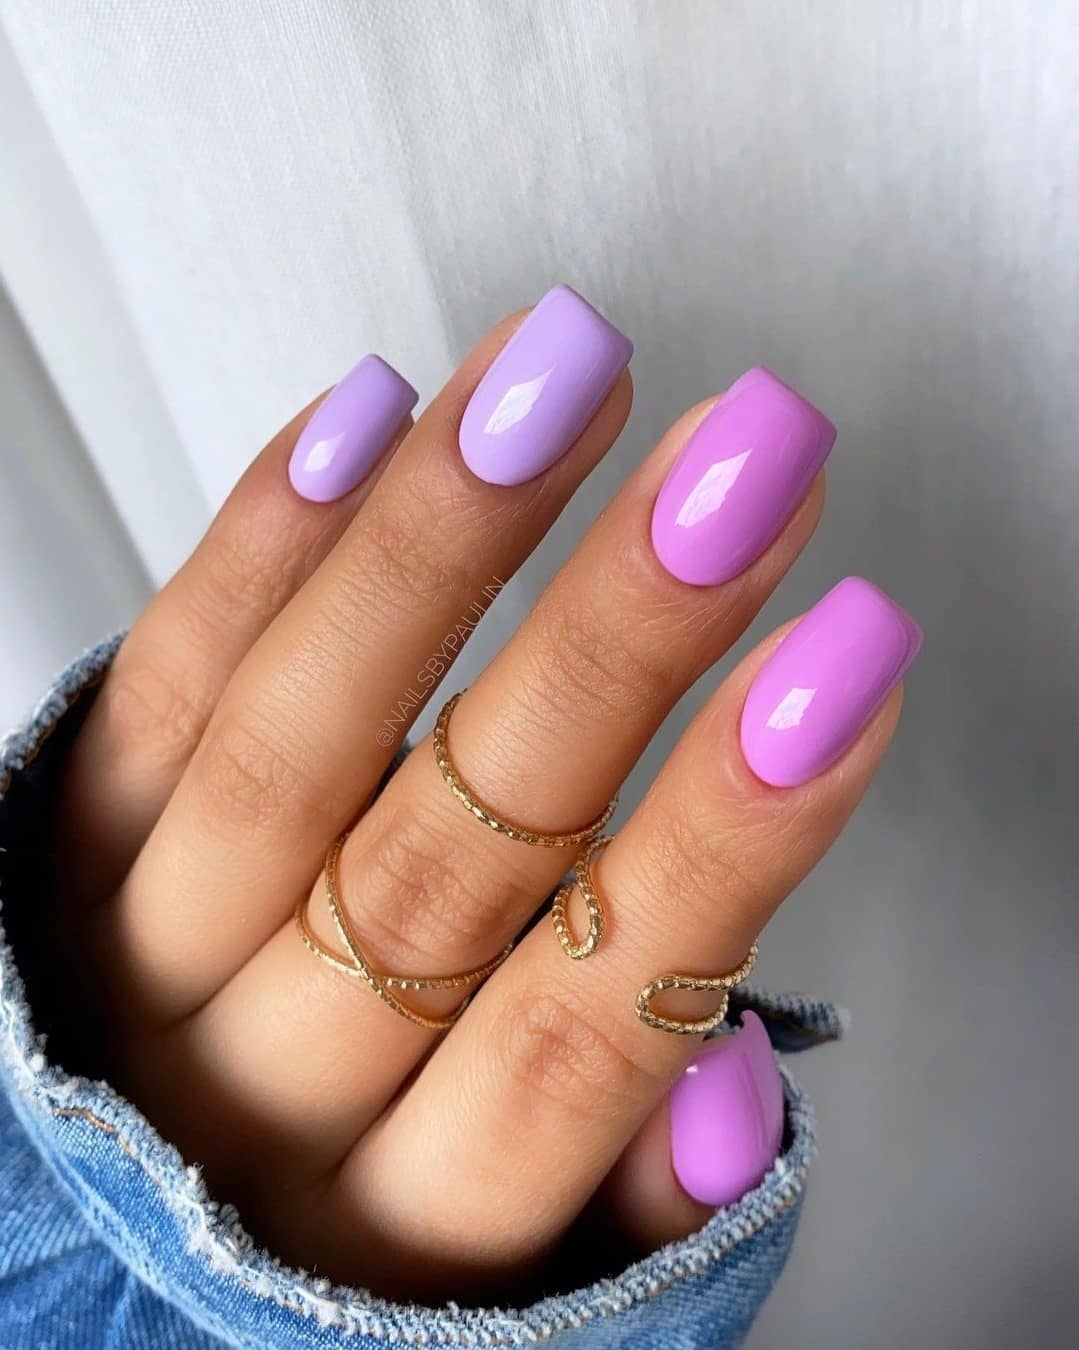 25 Trending Summer Nail Colors And Designs For 2021 images 7